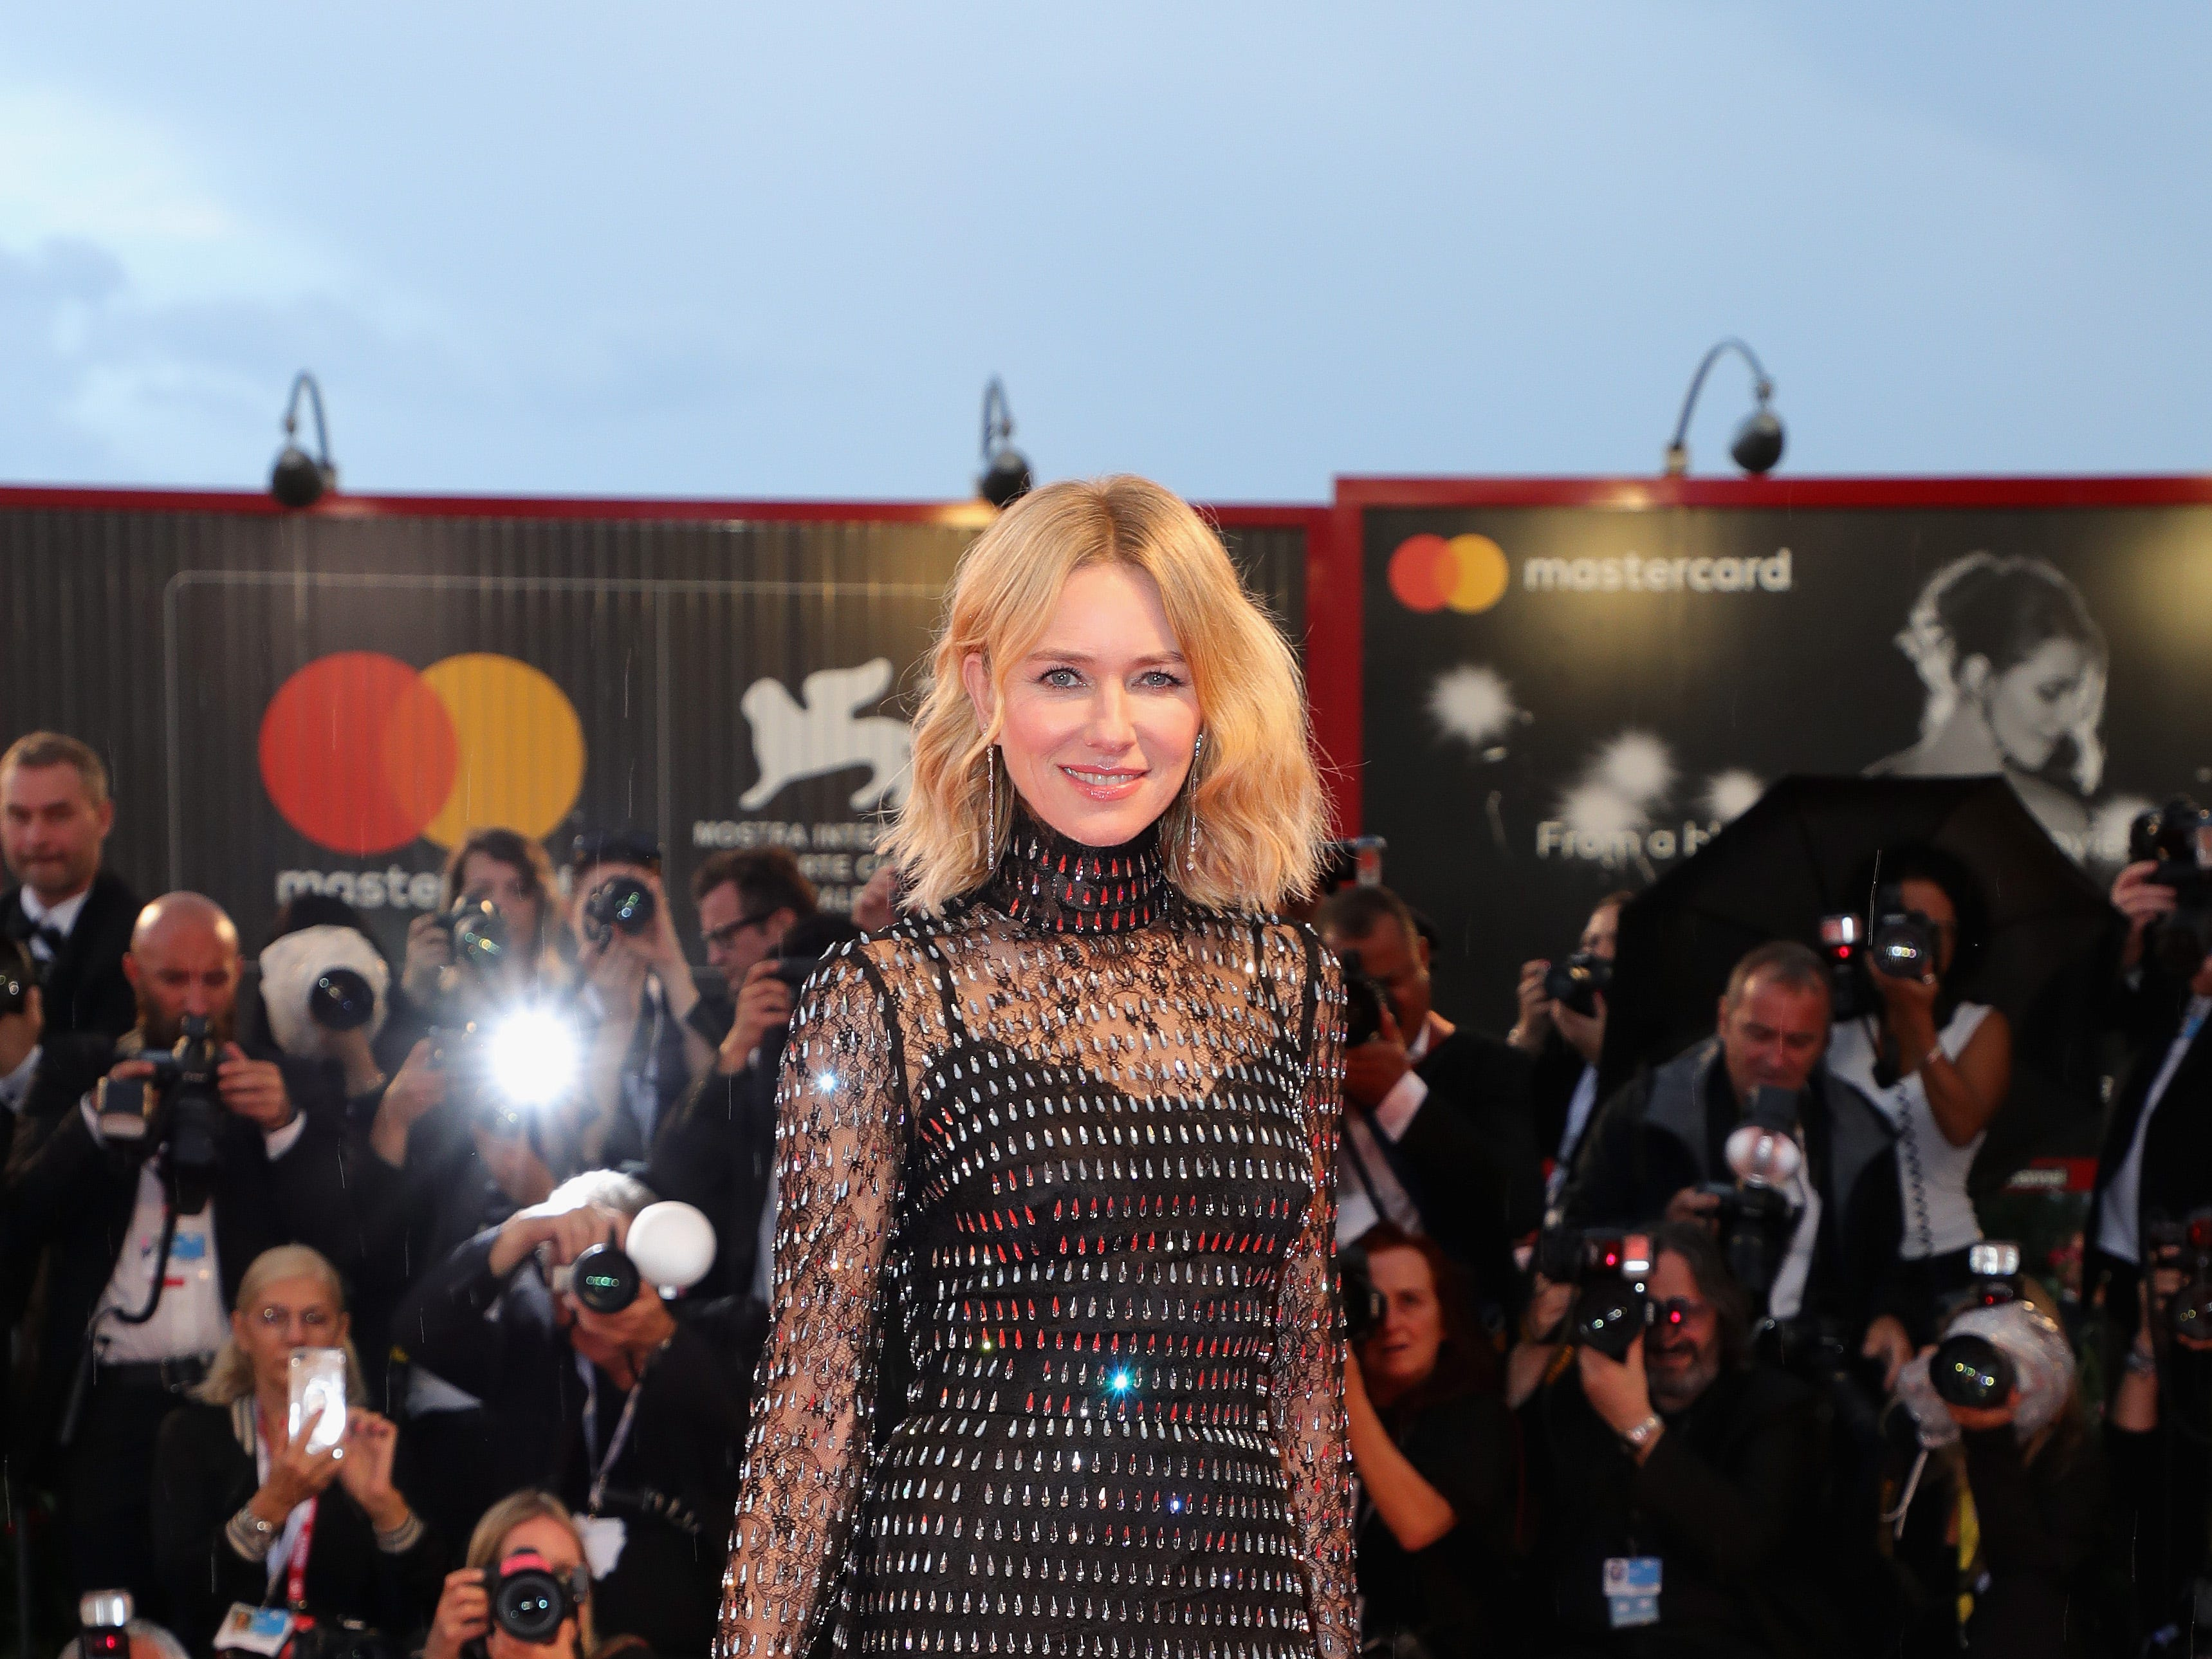 VENICE, ITALY - SEPTEMBER 03:  Naomi Watts walks the red carpet ahead of the 'At Eternity's Gate' screening during the 75th Venice Film Festival at Sala Grande on September 3, 2018 in Venice, Italy.  (Photo by Vittorio Zunino Celotto/Getty Images) ORG XMIT: 775200739 ORIG FILE ID: 1026509846